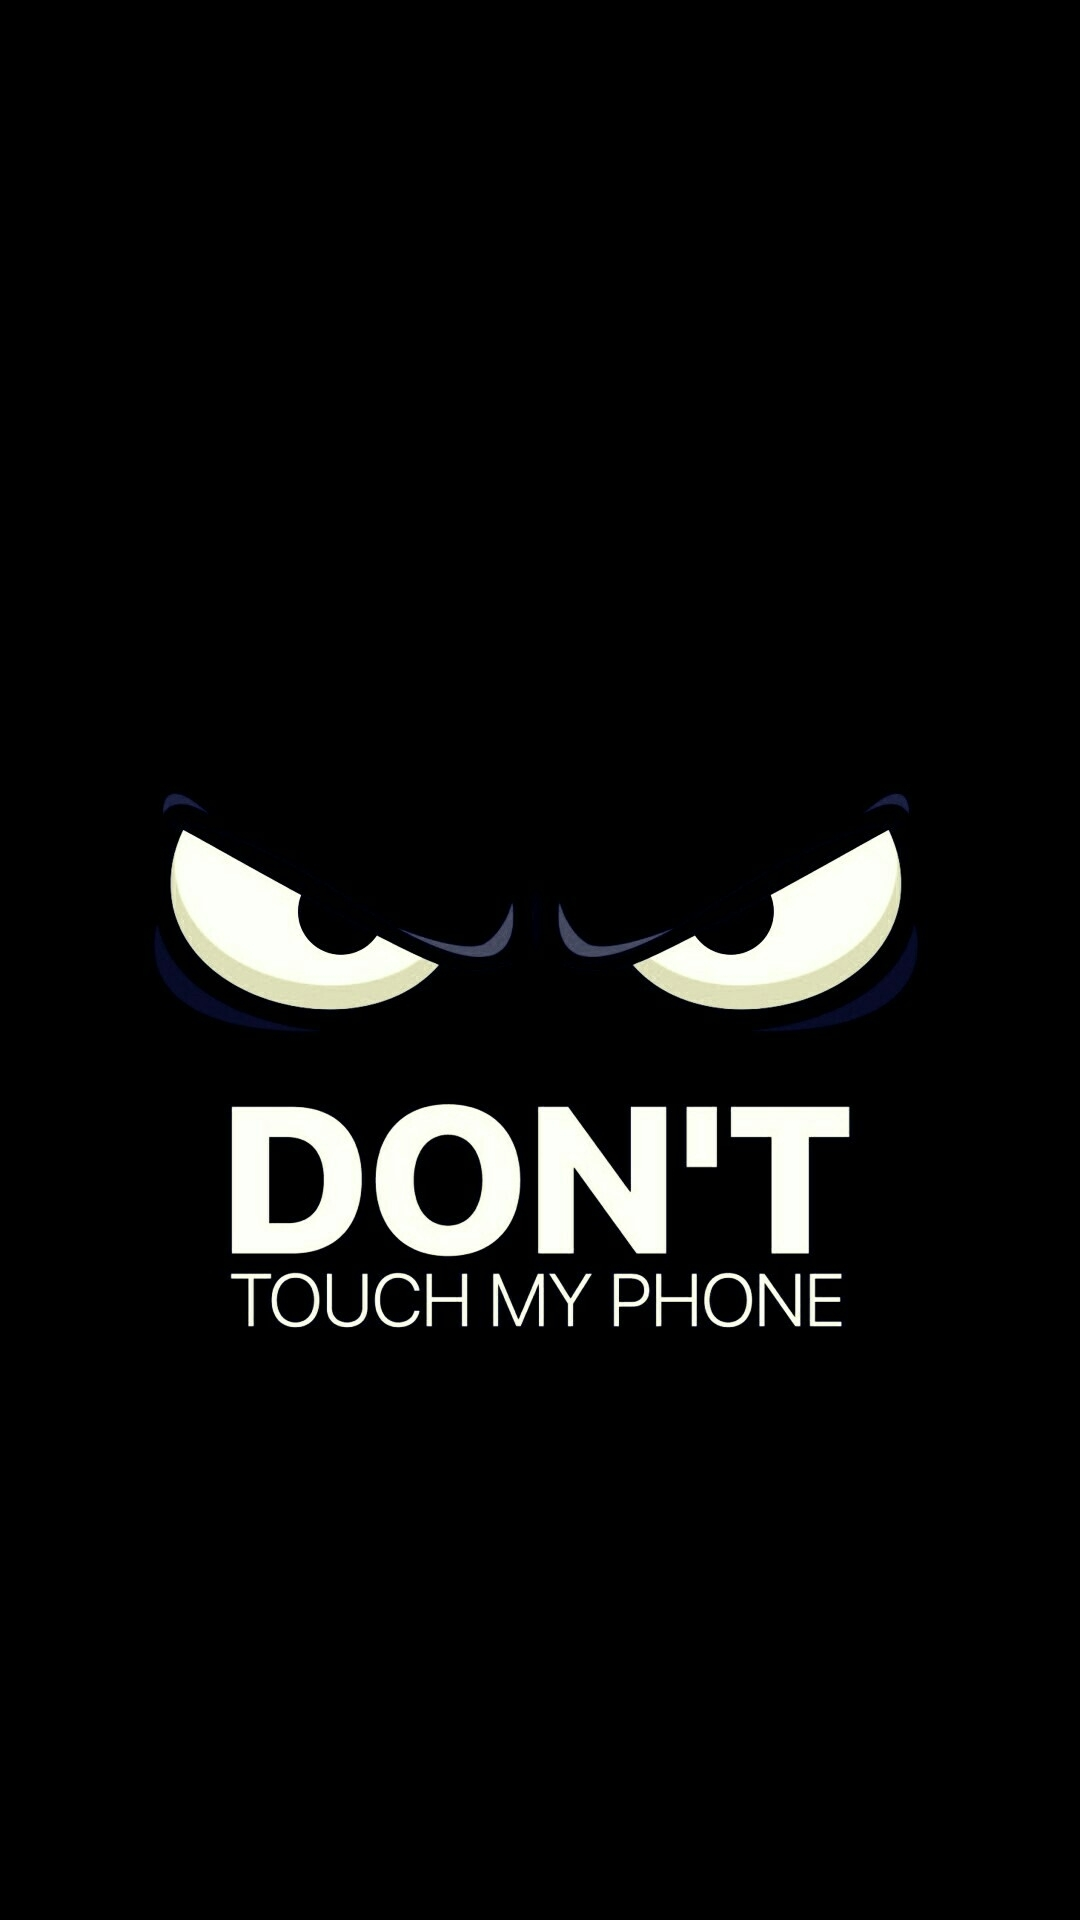 don't touch my phone | fond d'ecran | pinterest | Écran, ecran